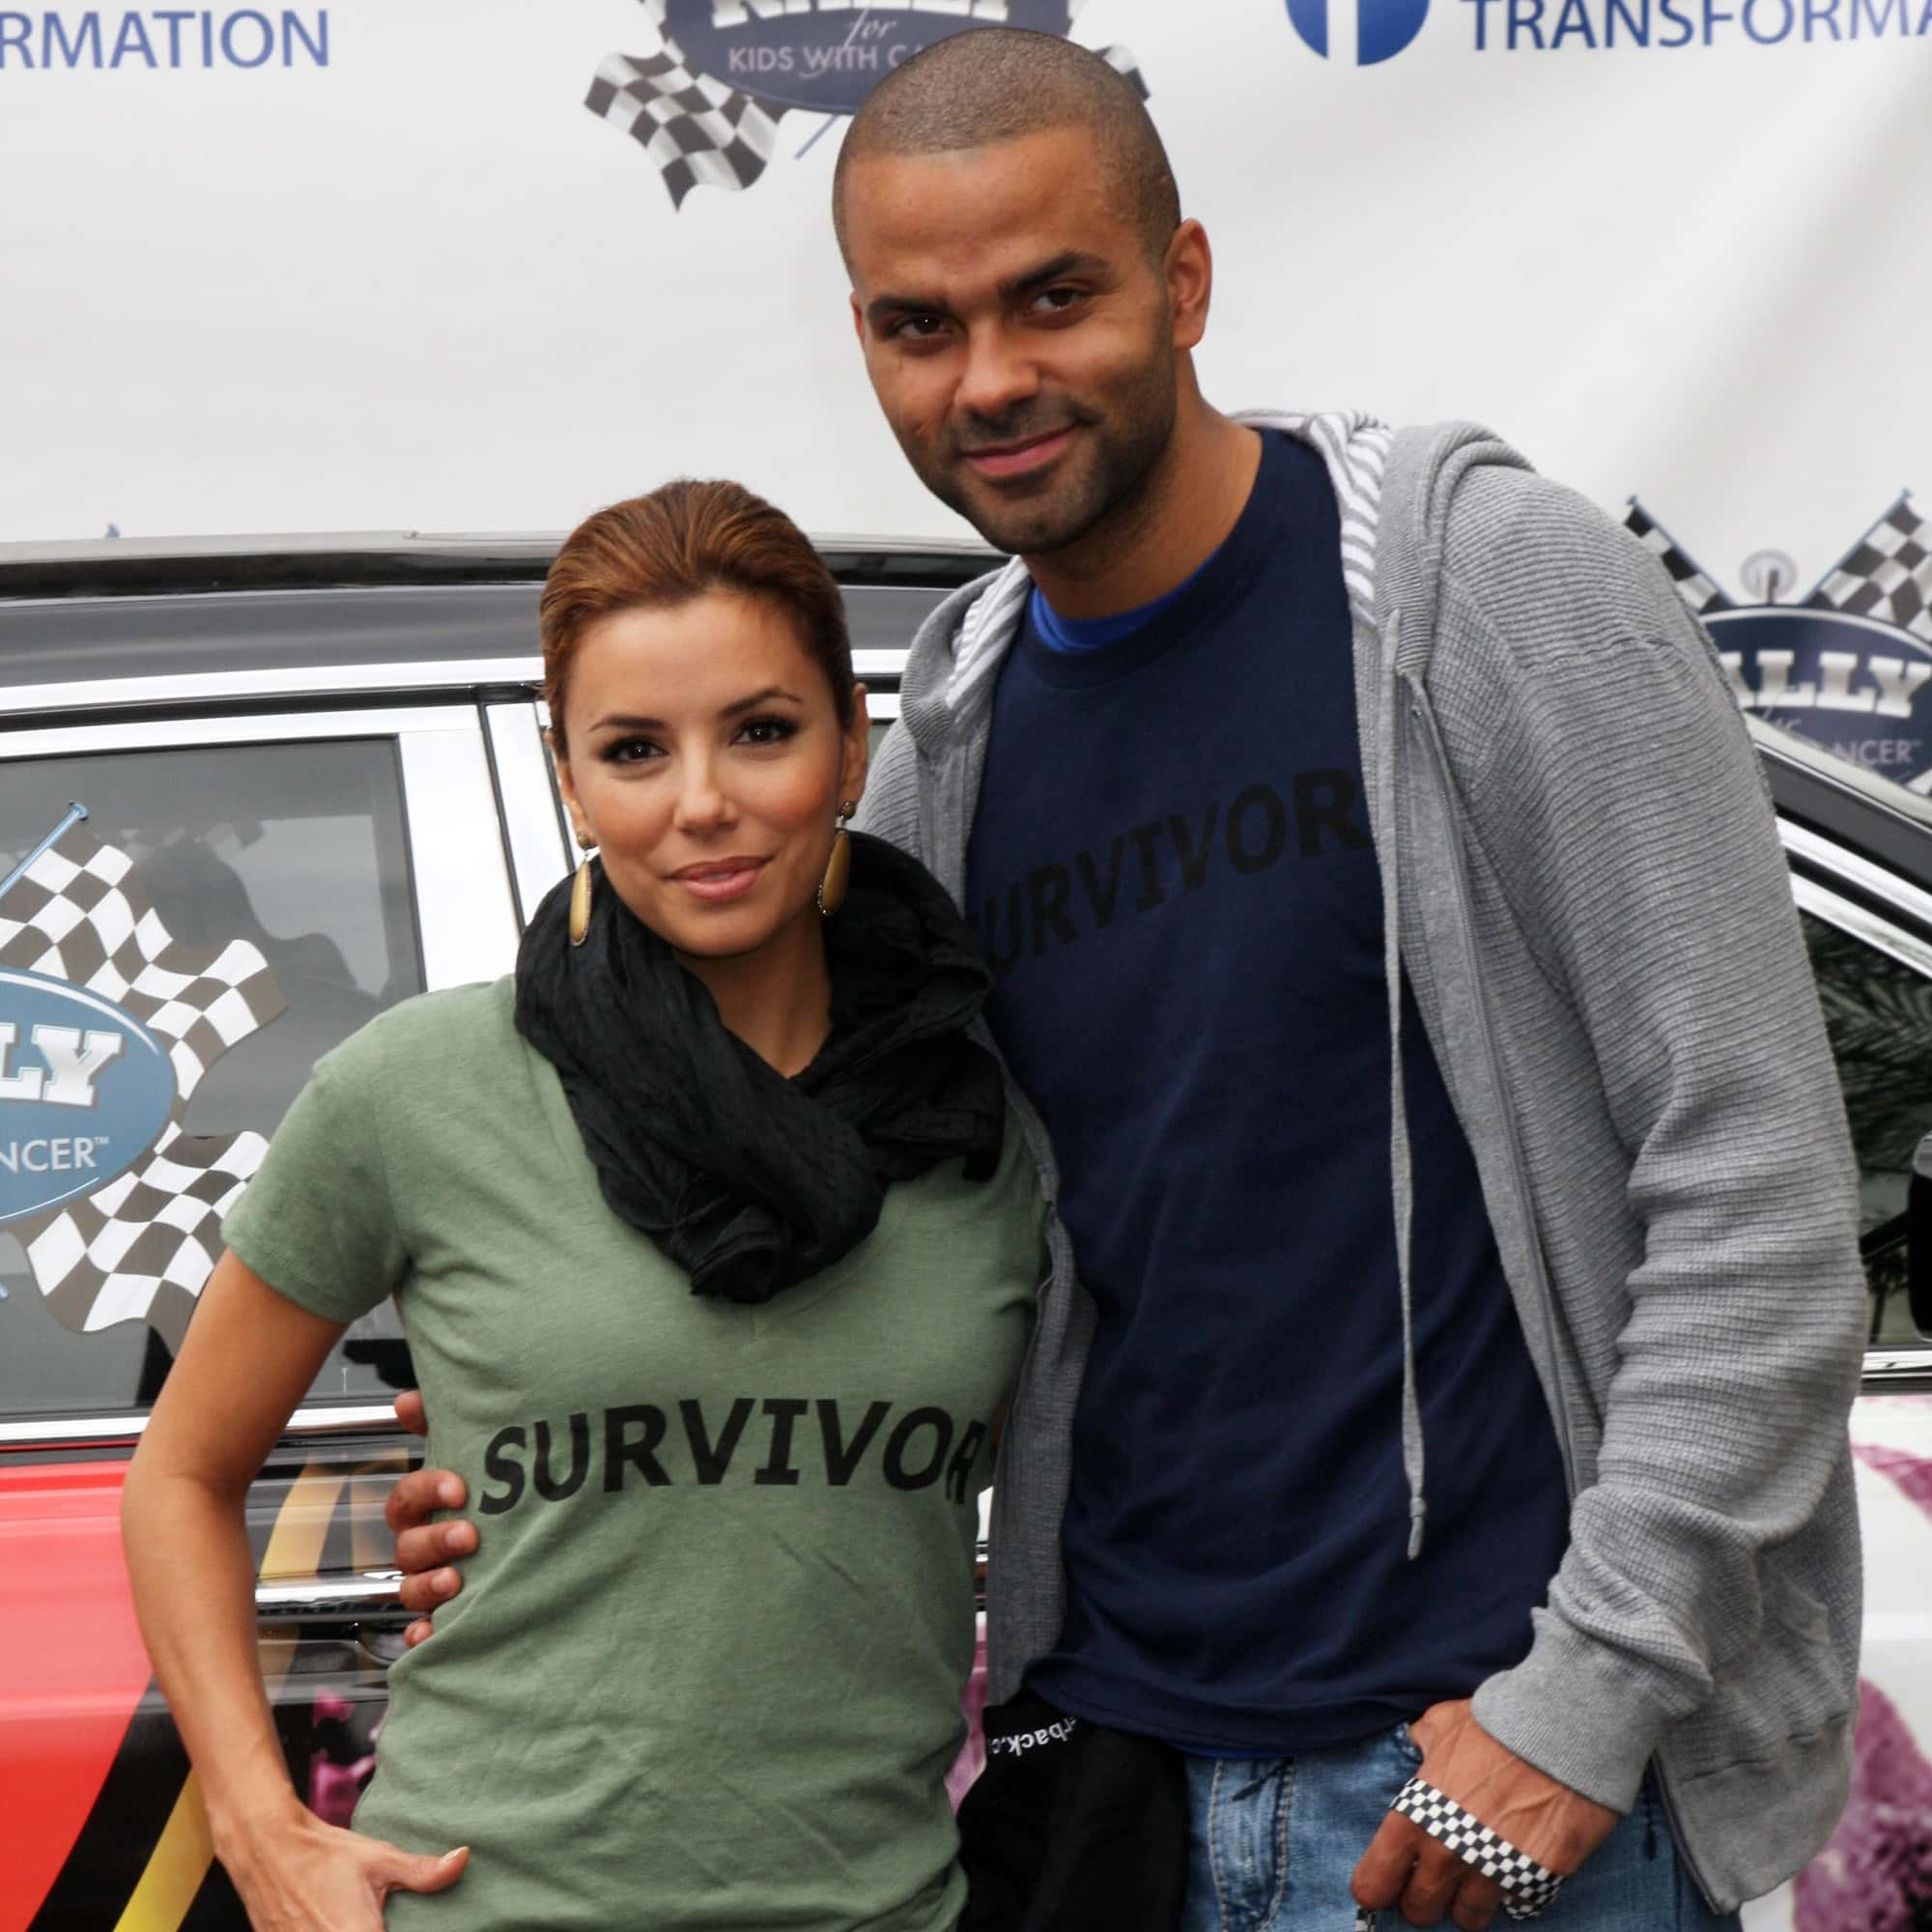 Eva Longoria and Tony Parker started dating after meeting in November 2004 after a San Antonio Spurs game